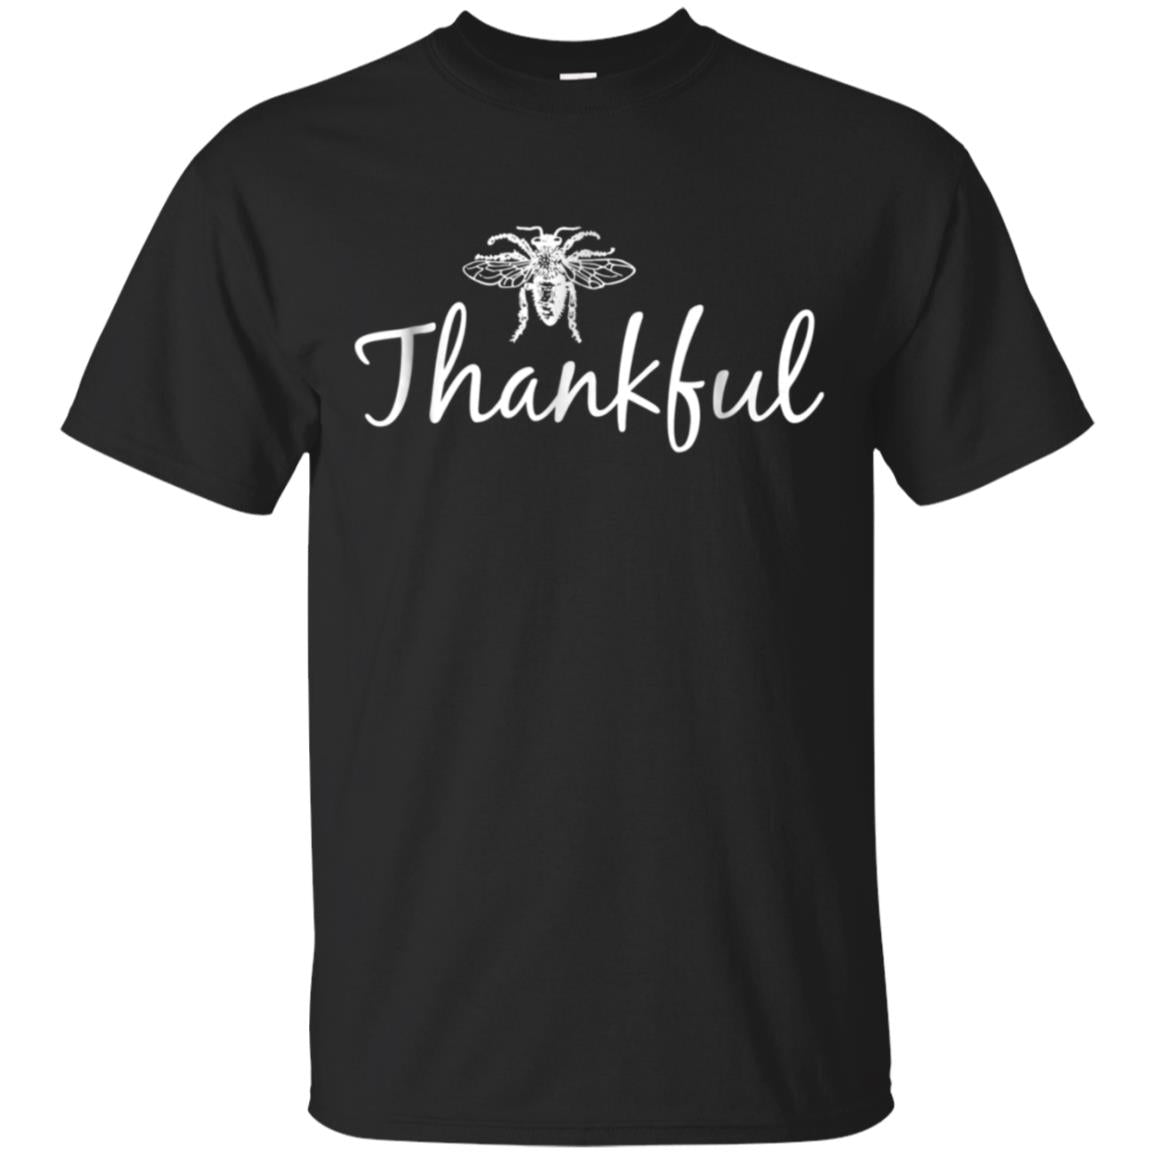 Be Thankful Meditation Slogan T-Shirt 99promocode